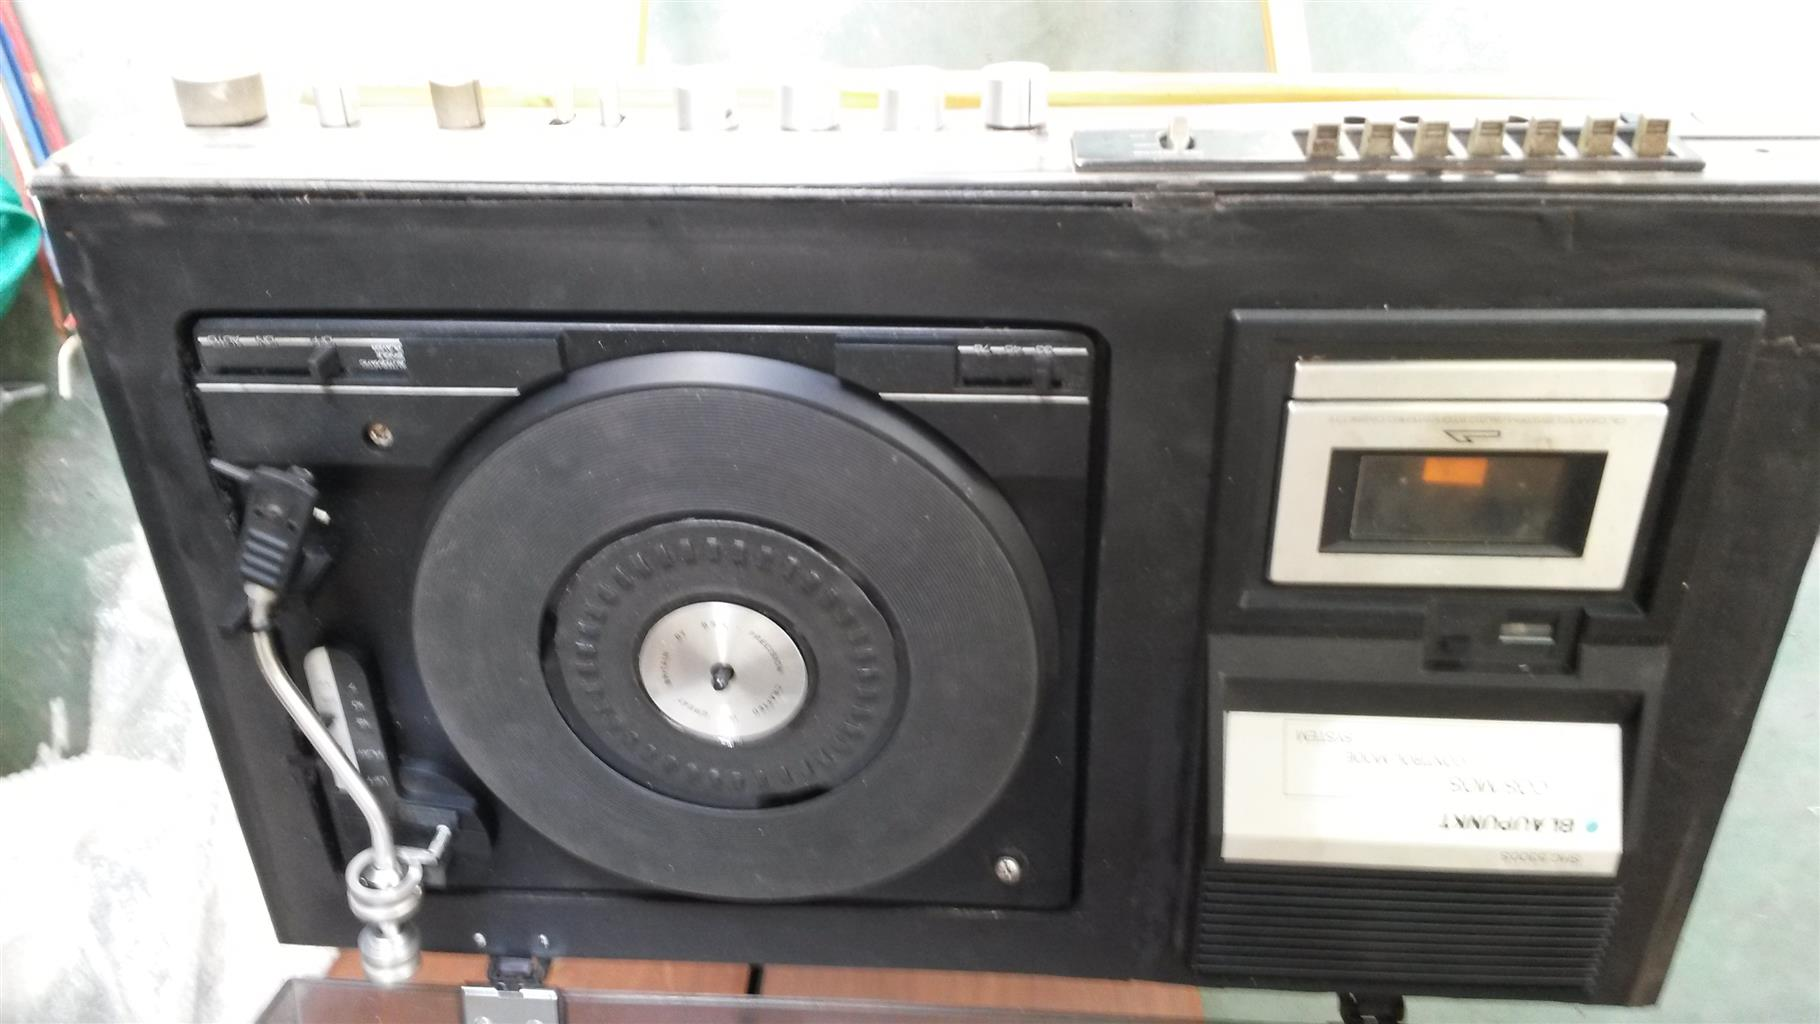 BLAUPUNKT COMBO MUSIC CENTRE, SAMSUNG RADIO/RECORD PLAYER/TAPE DECK, NATIONAL COMBO HI FI SET